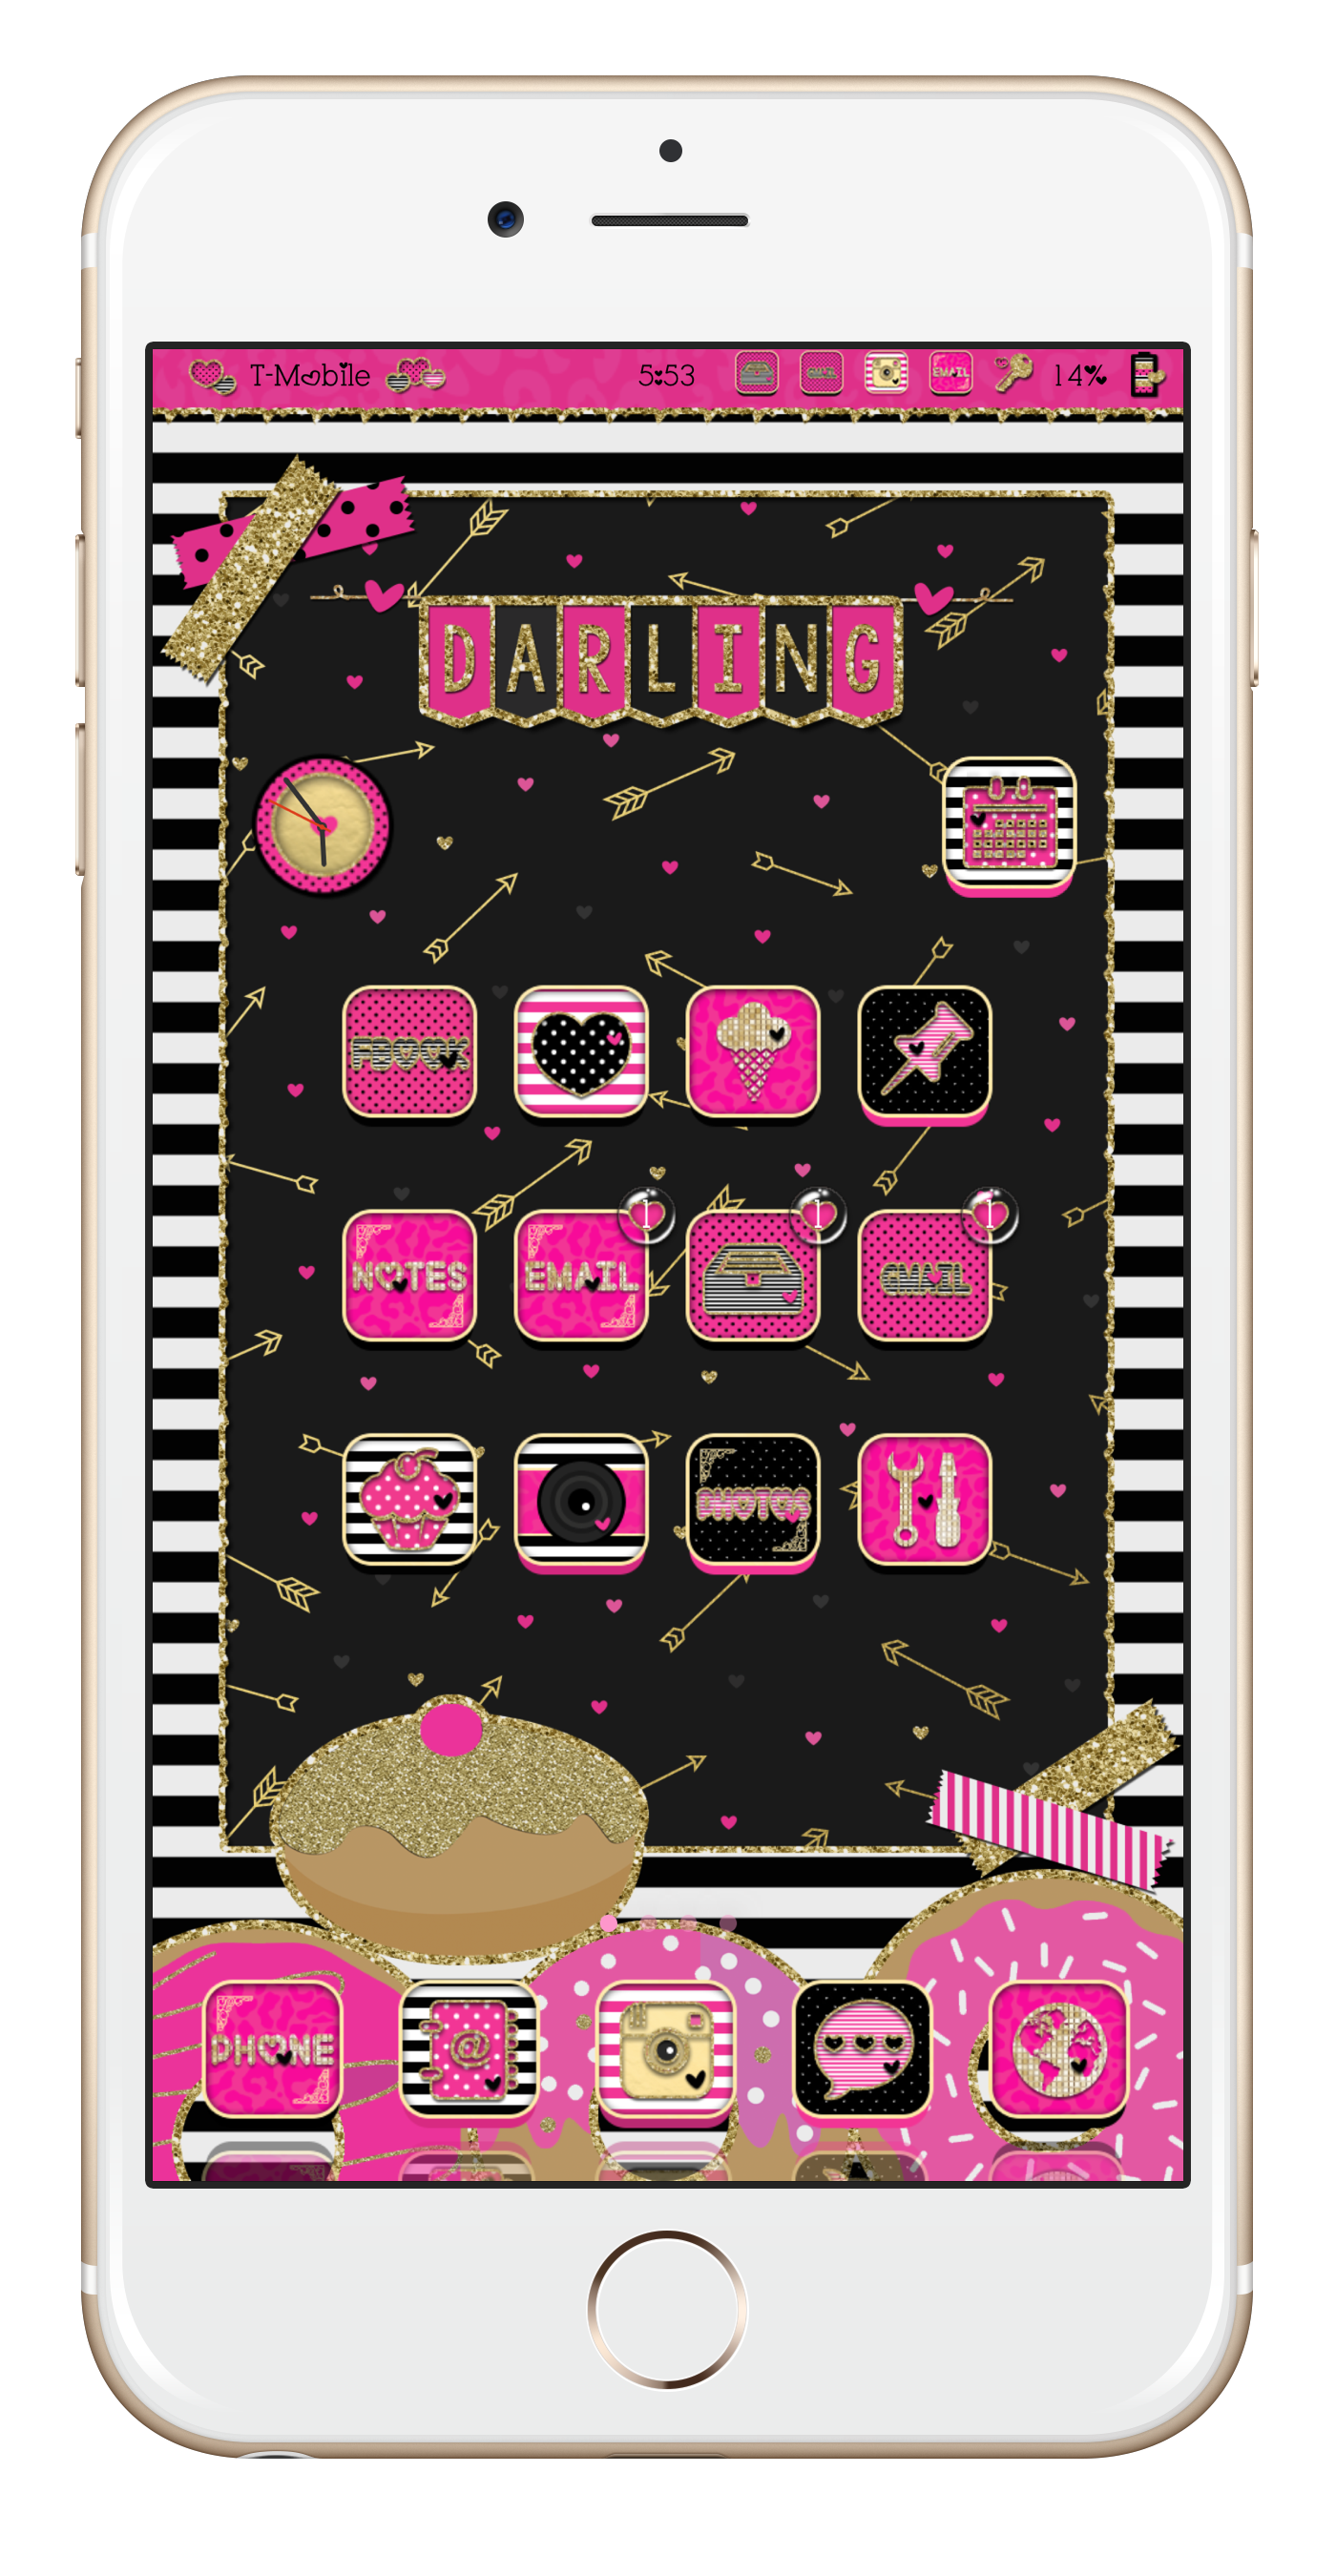 Pin by Darling on Jailbreak! in 2019 Phone themes